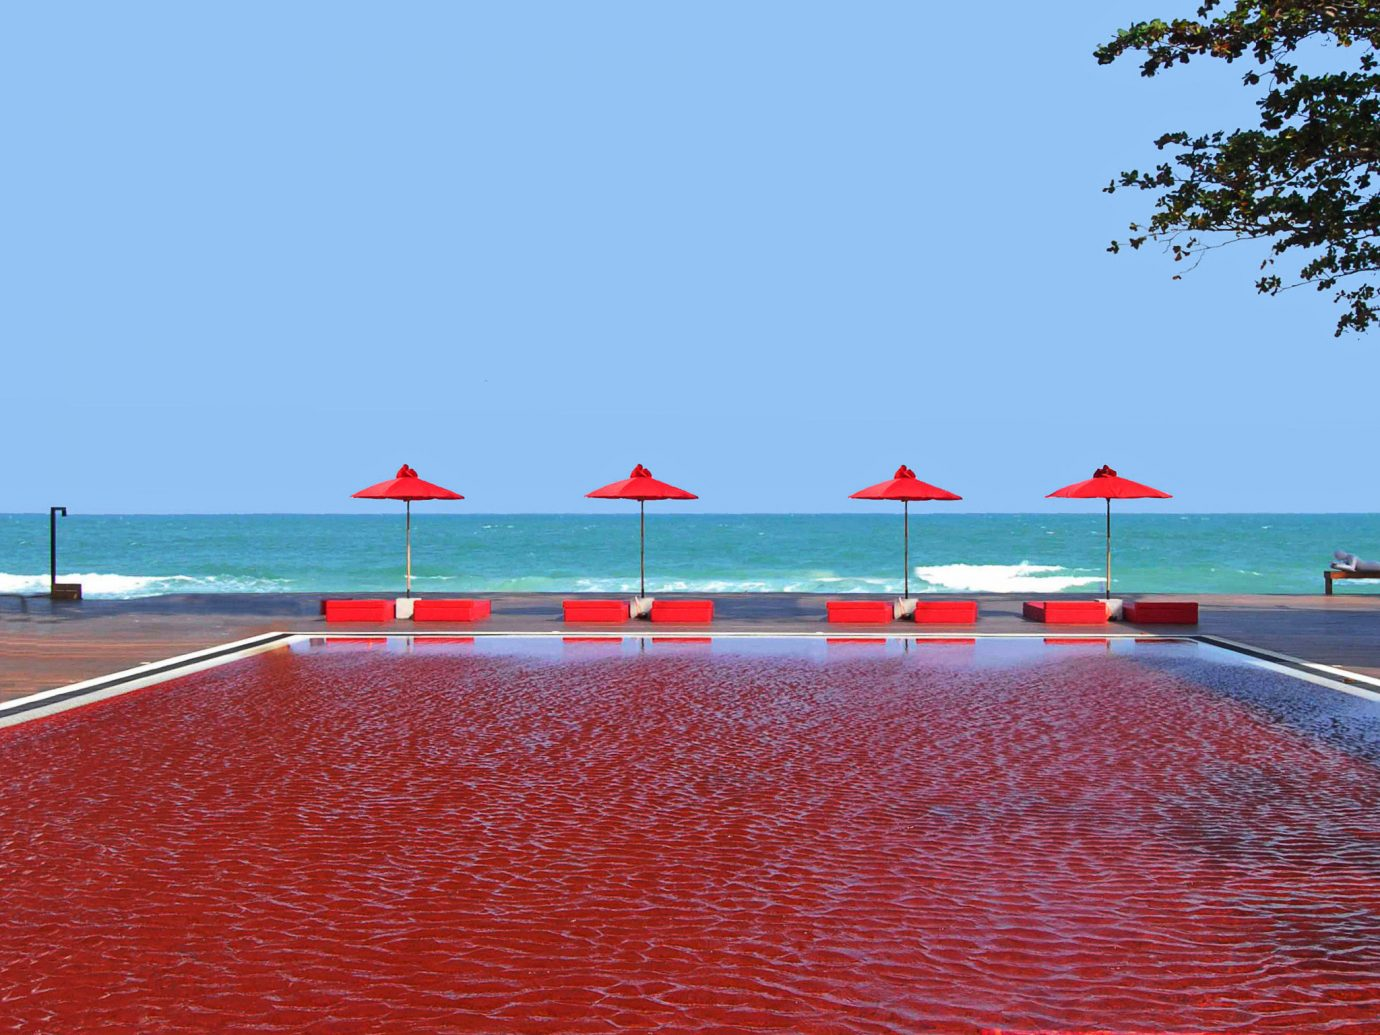 Infinity Pool At The Library In Thailand - Red Water